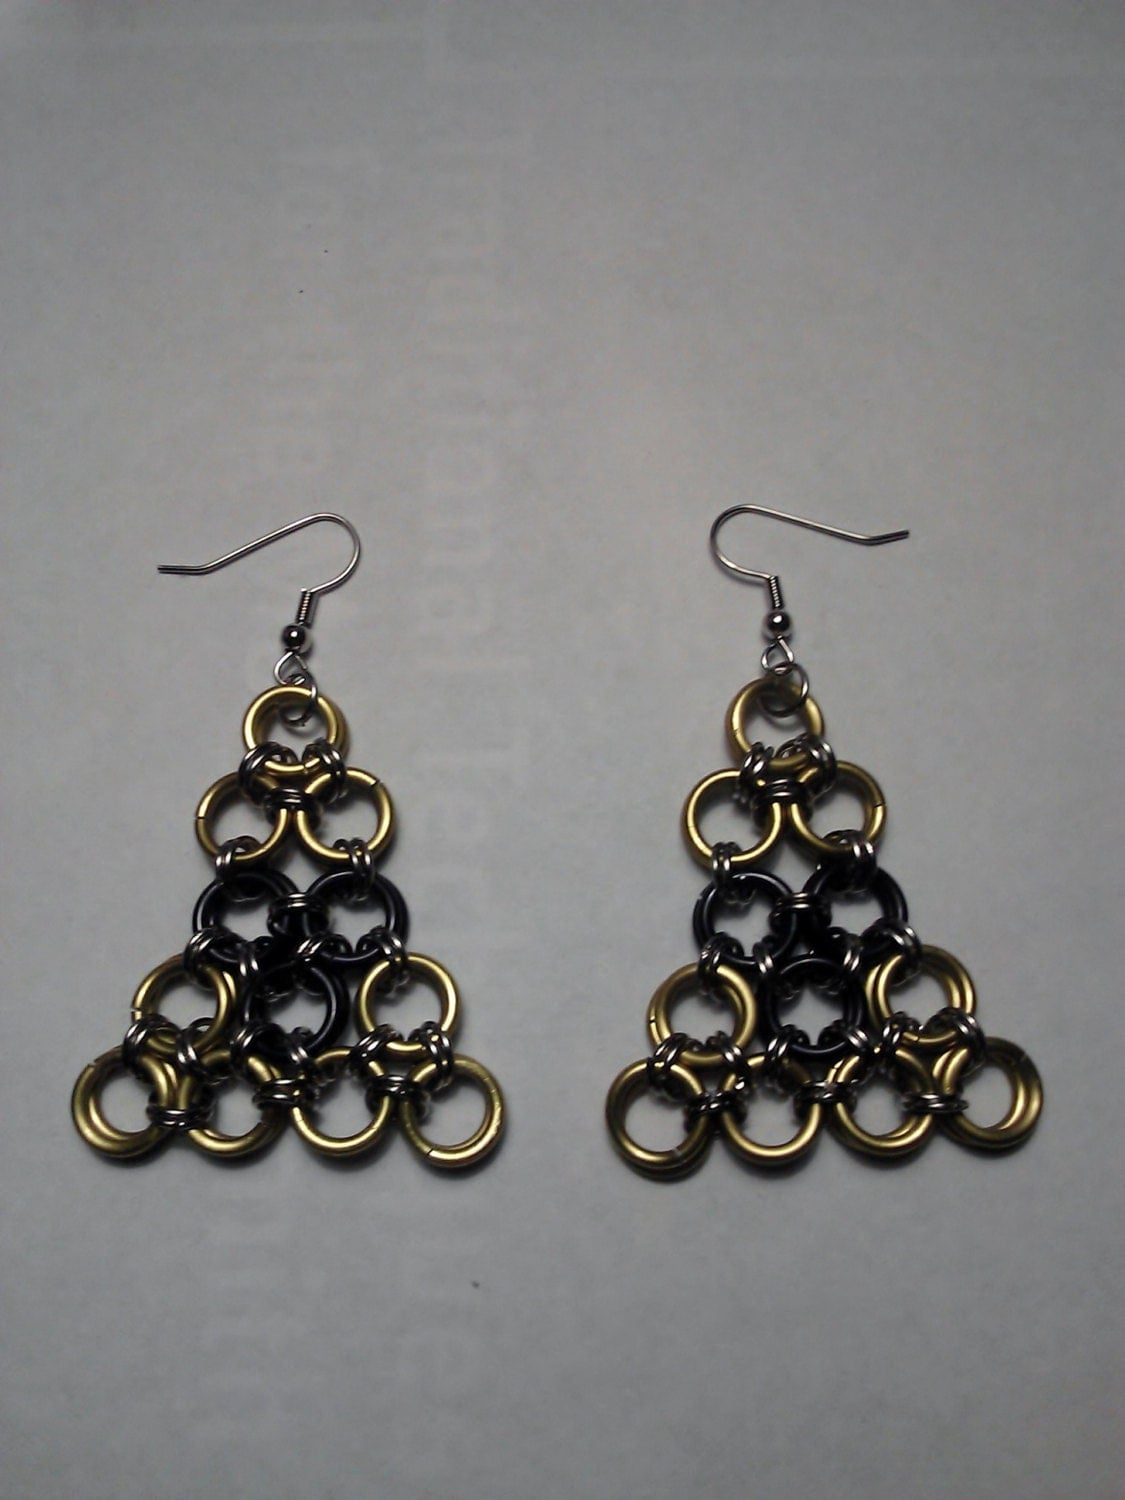 Zelda Tri-Force Inspired Chainmail Earrings Yellow Black and Silver Aluminum Rings 9.25 Silver Earring Fittings Videogame Inspired Earrings